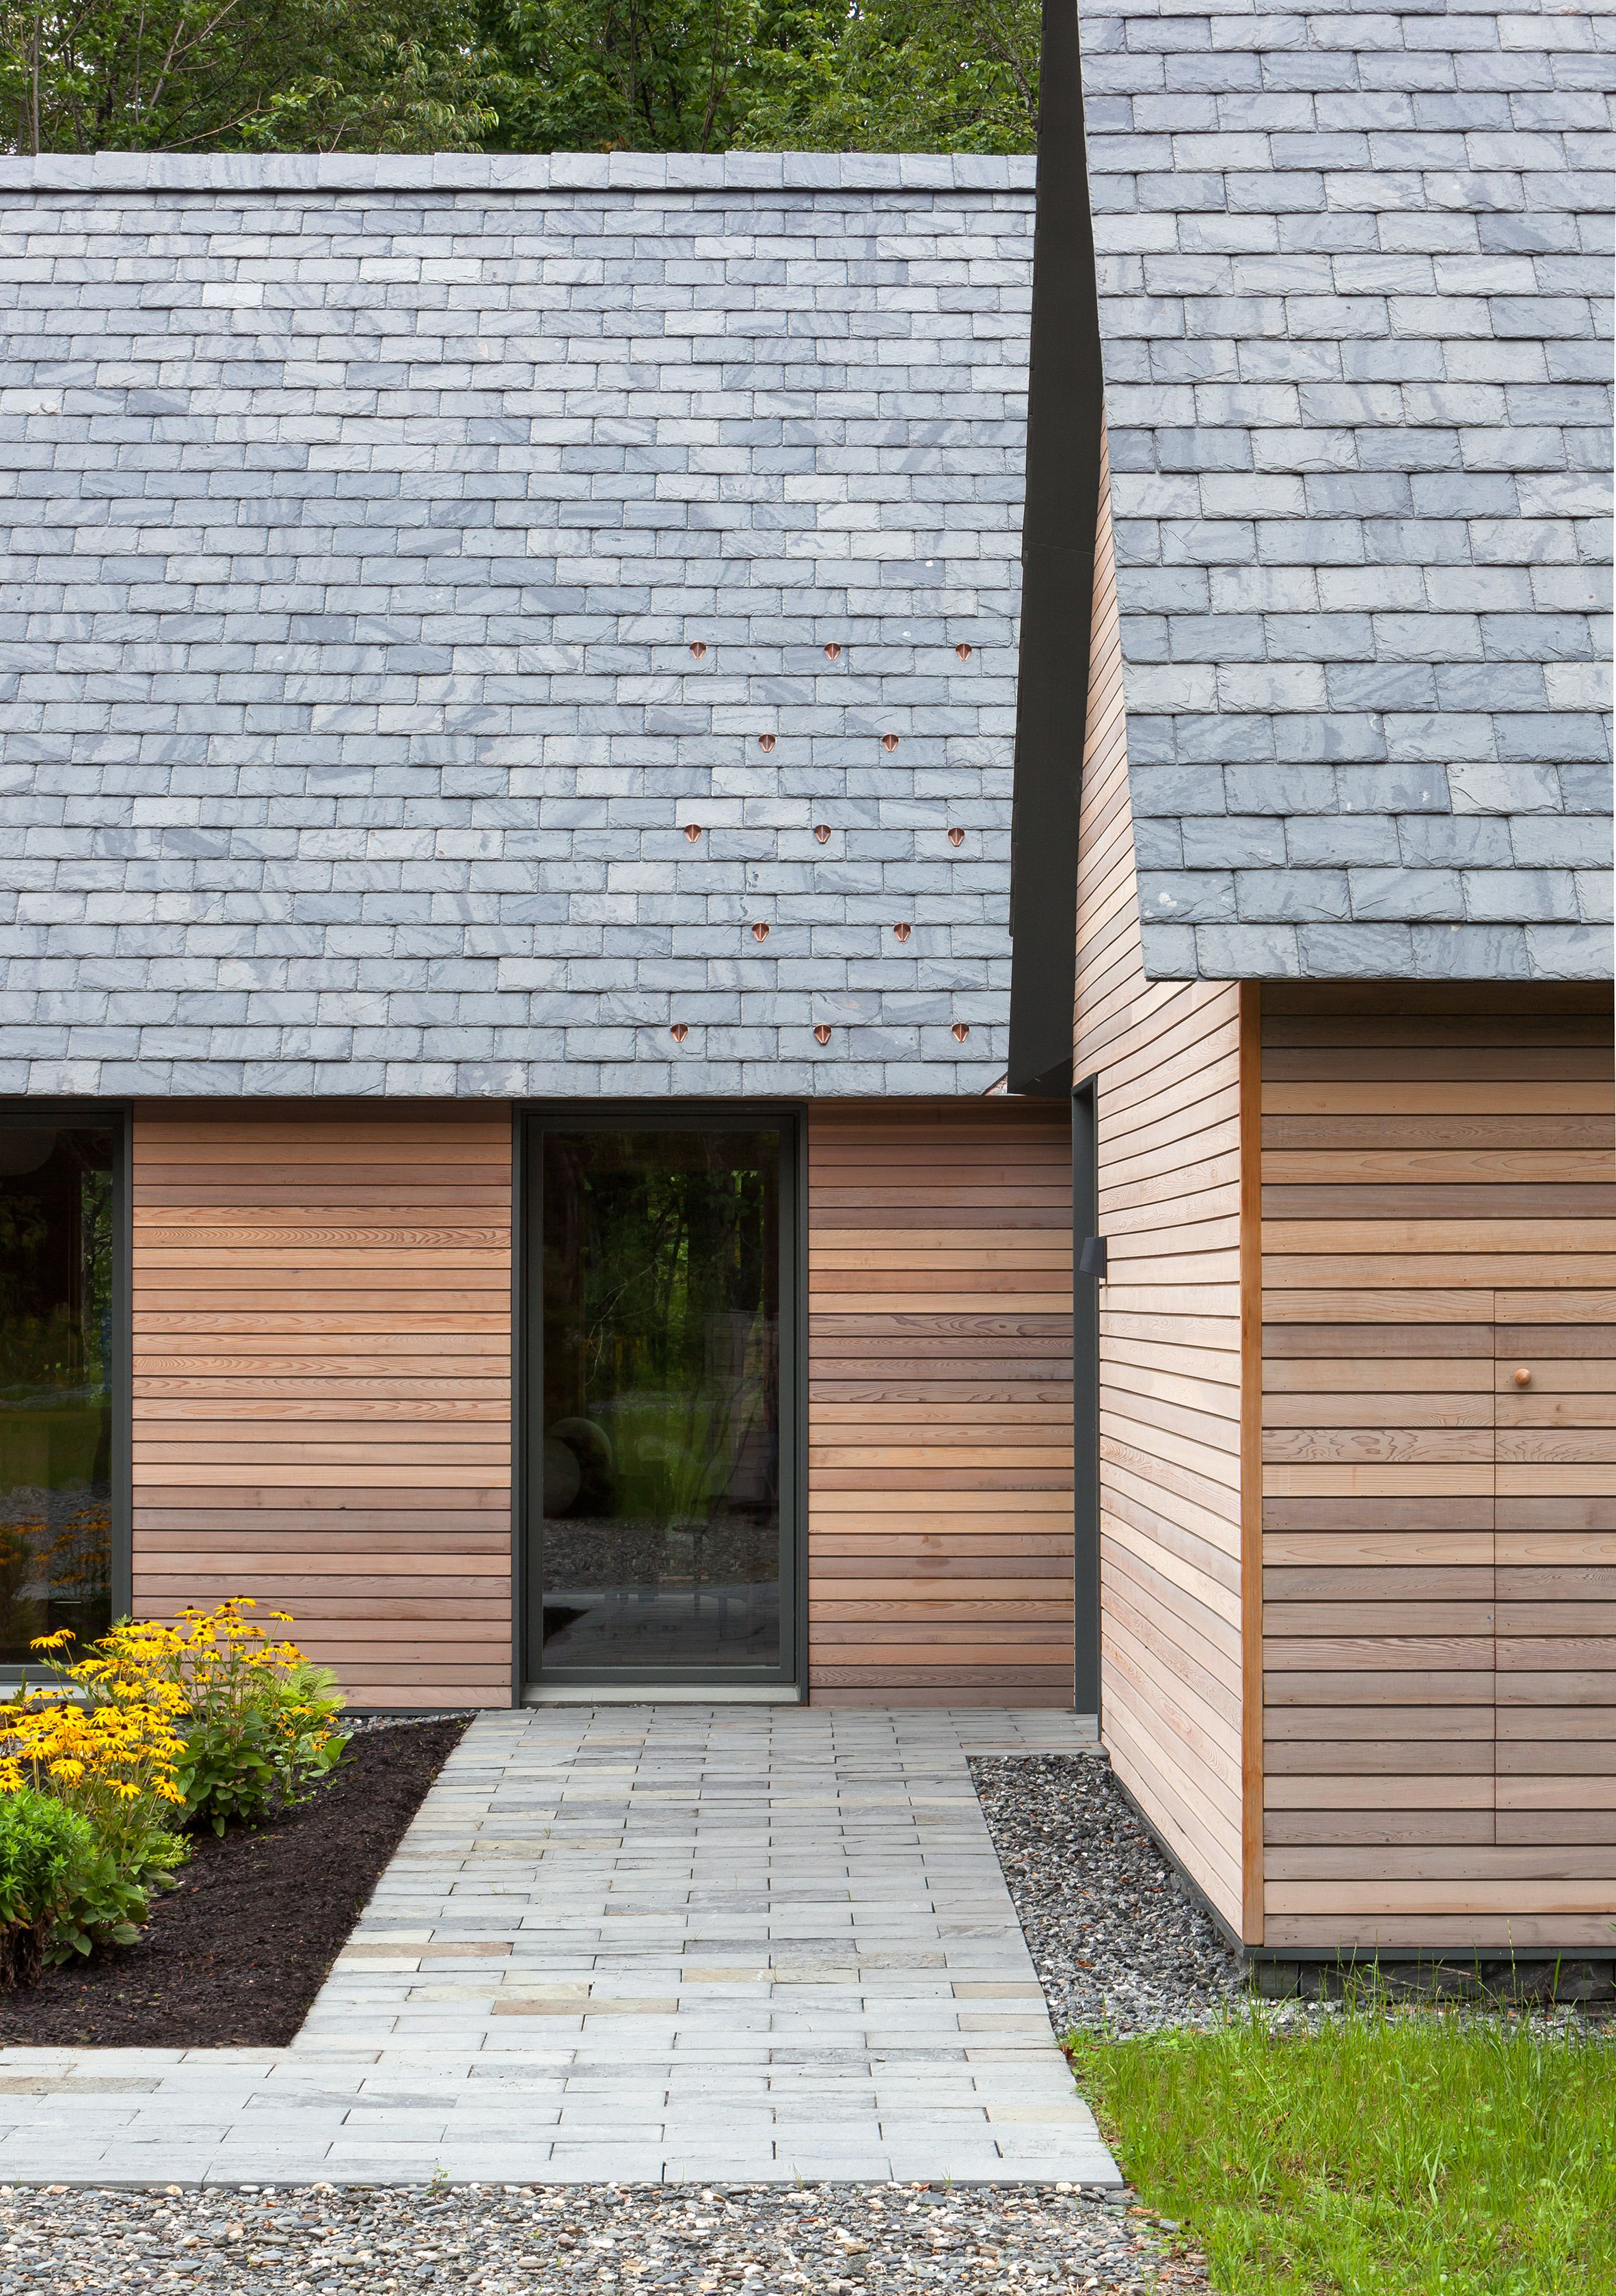 HGA took cues from Cape Cod-style homes while conceiving a series of ...